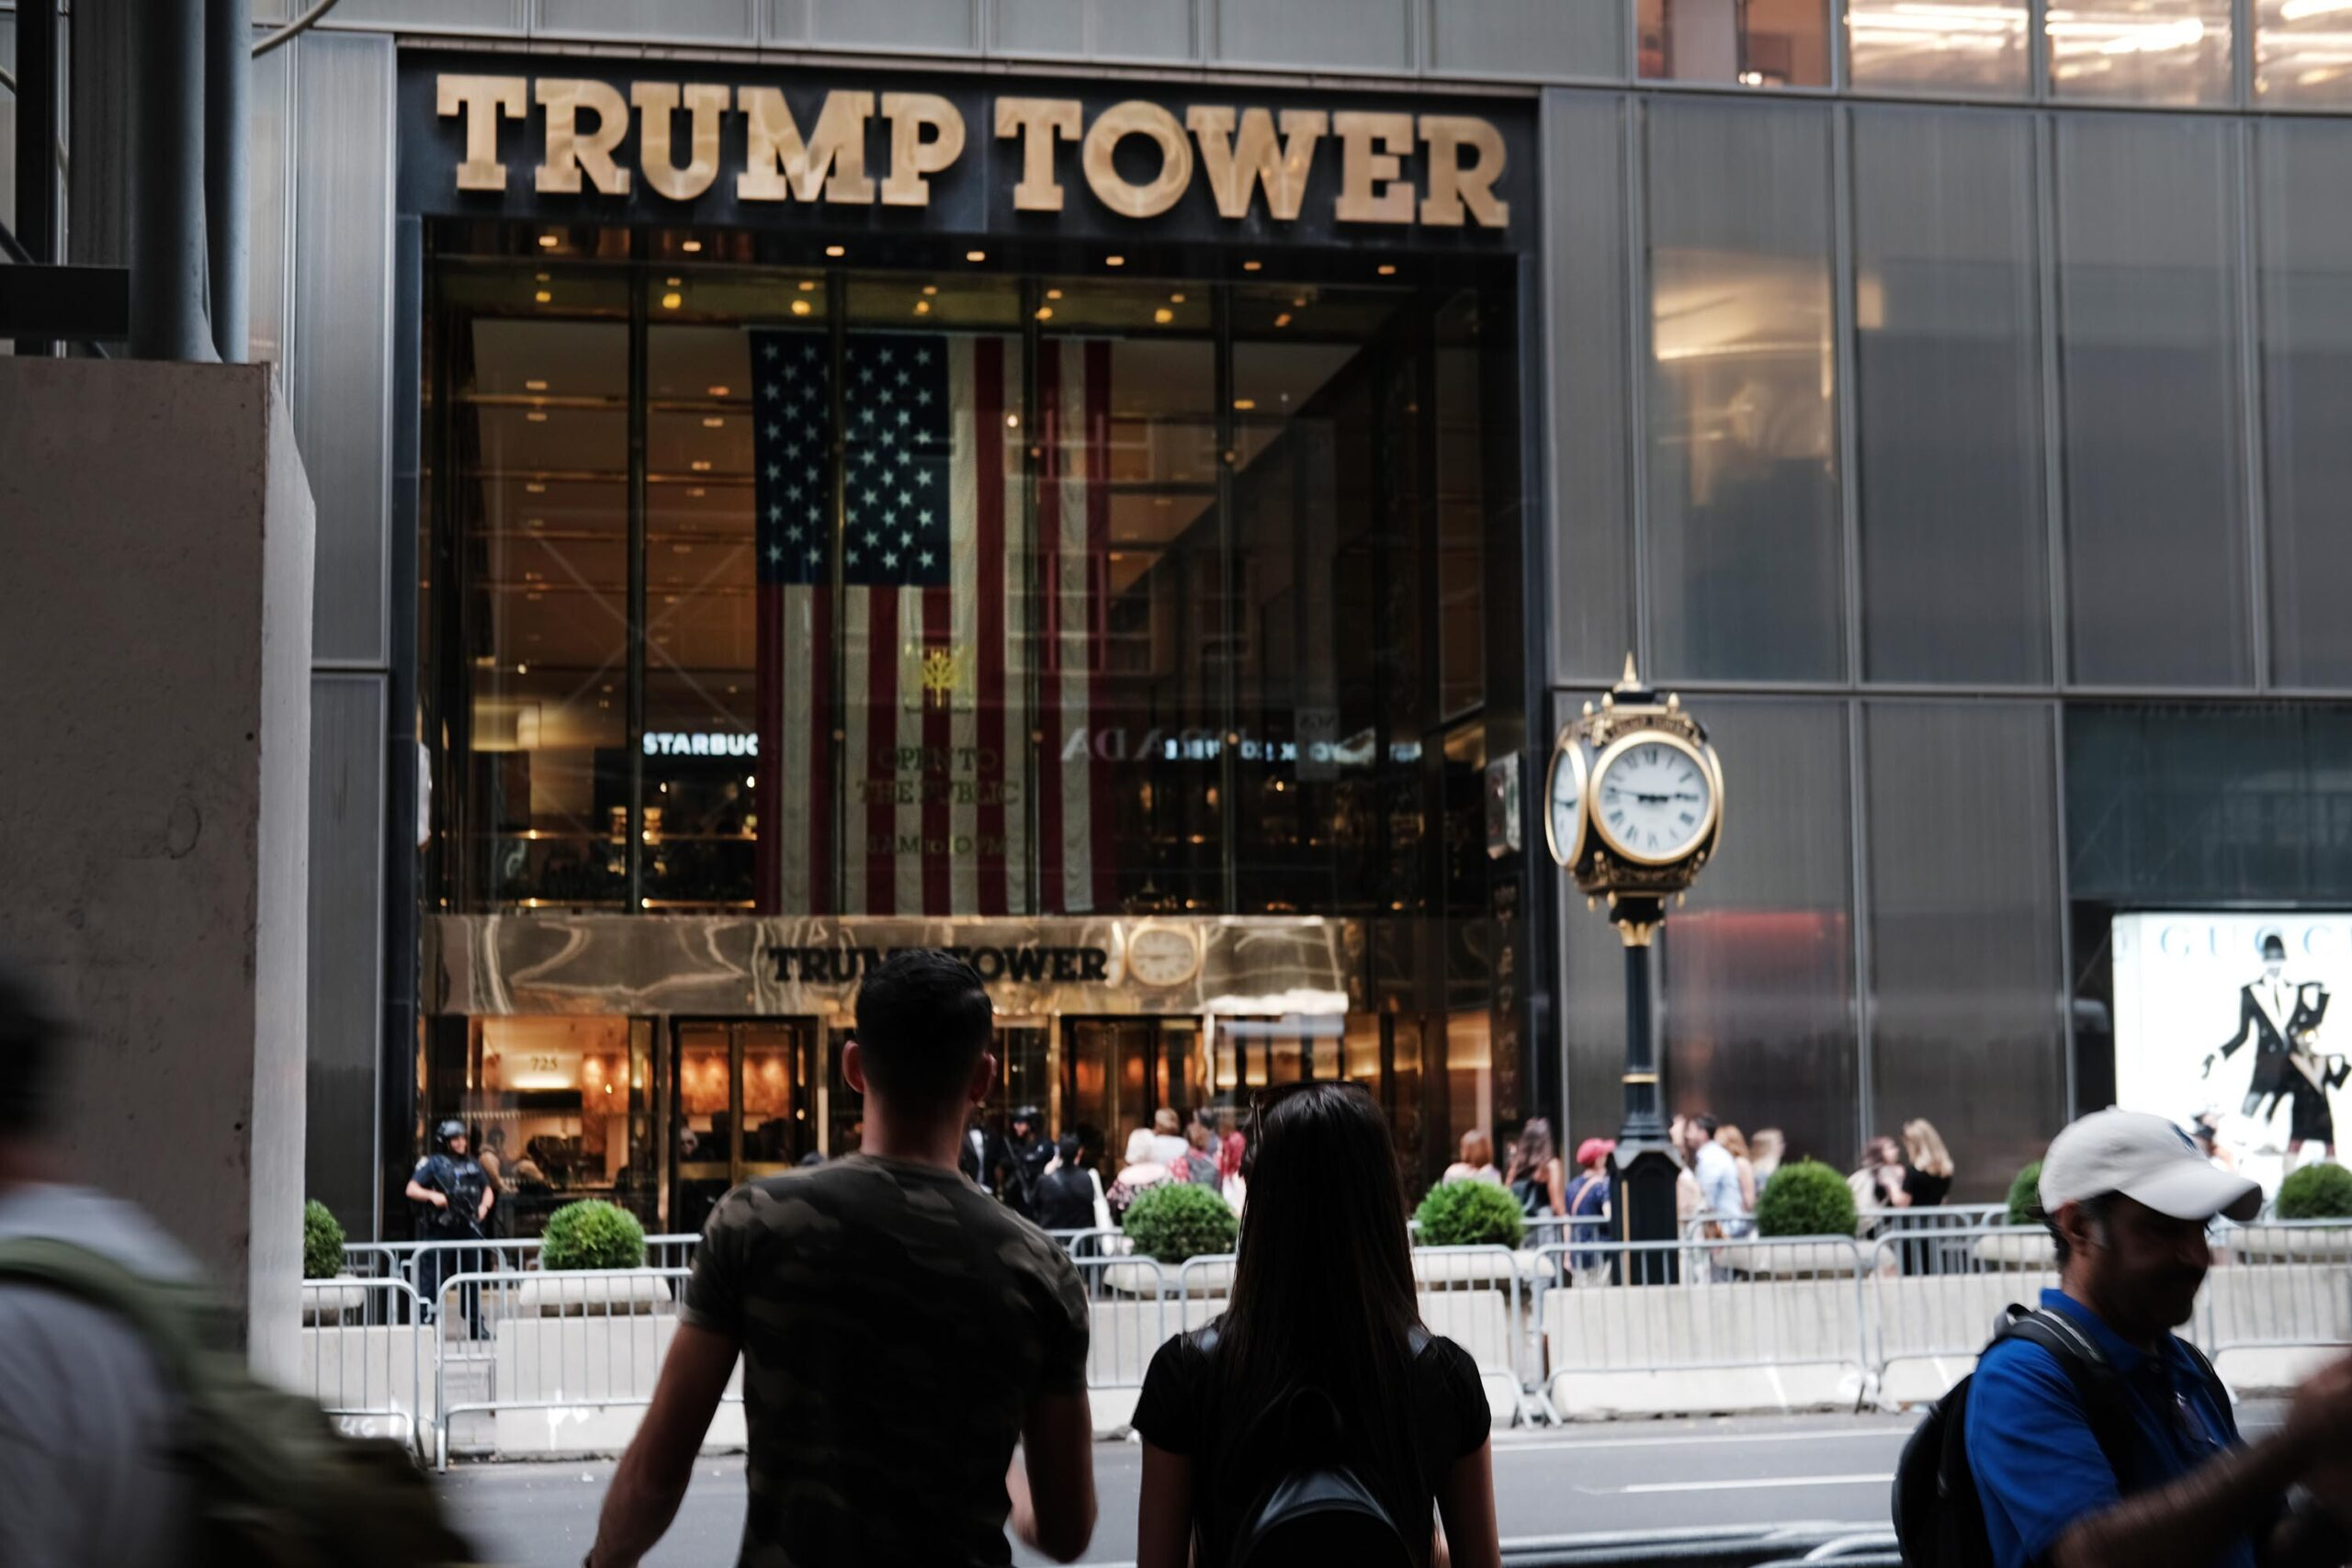 <i>Spencer Platt/Getty Images</i><br/>A New York judge has ordered the Trump Organization to submit a report next week to the New York Attorney General in an effort to resolve a long-running dispute over subpoenas for records.